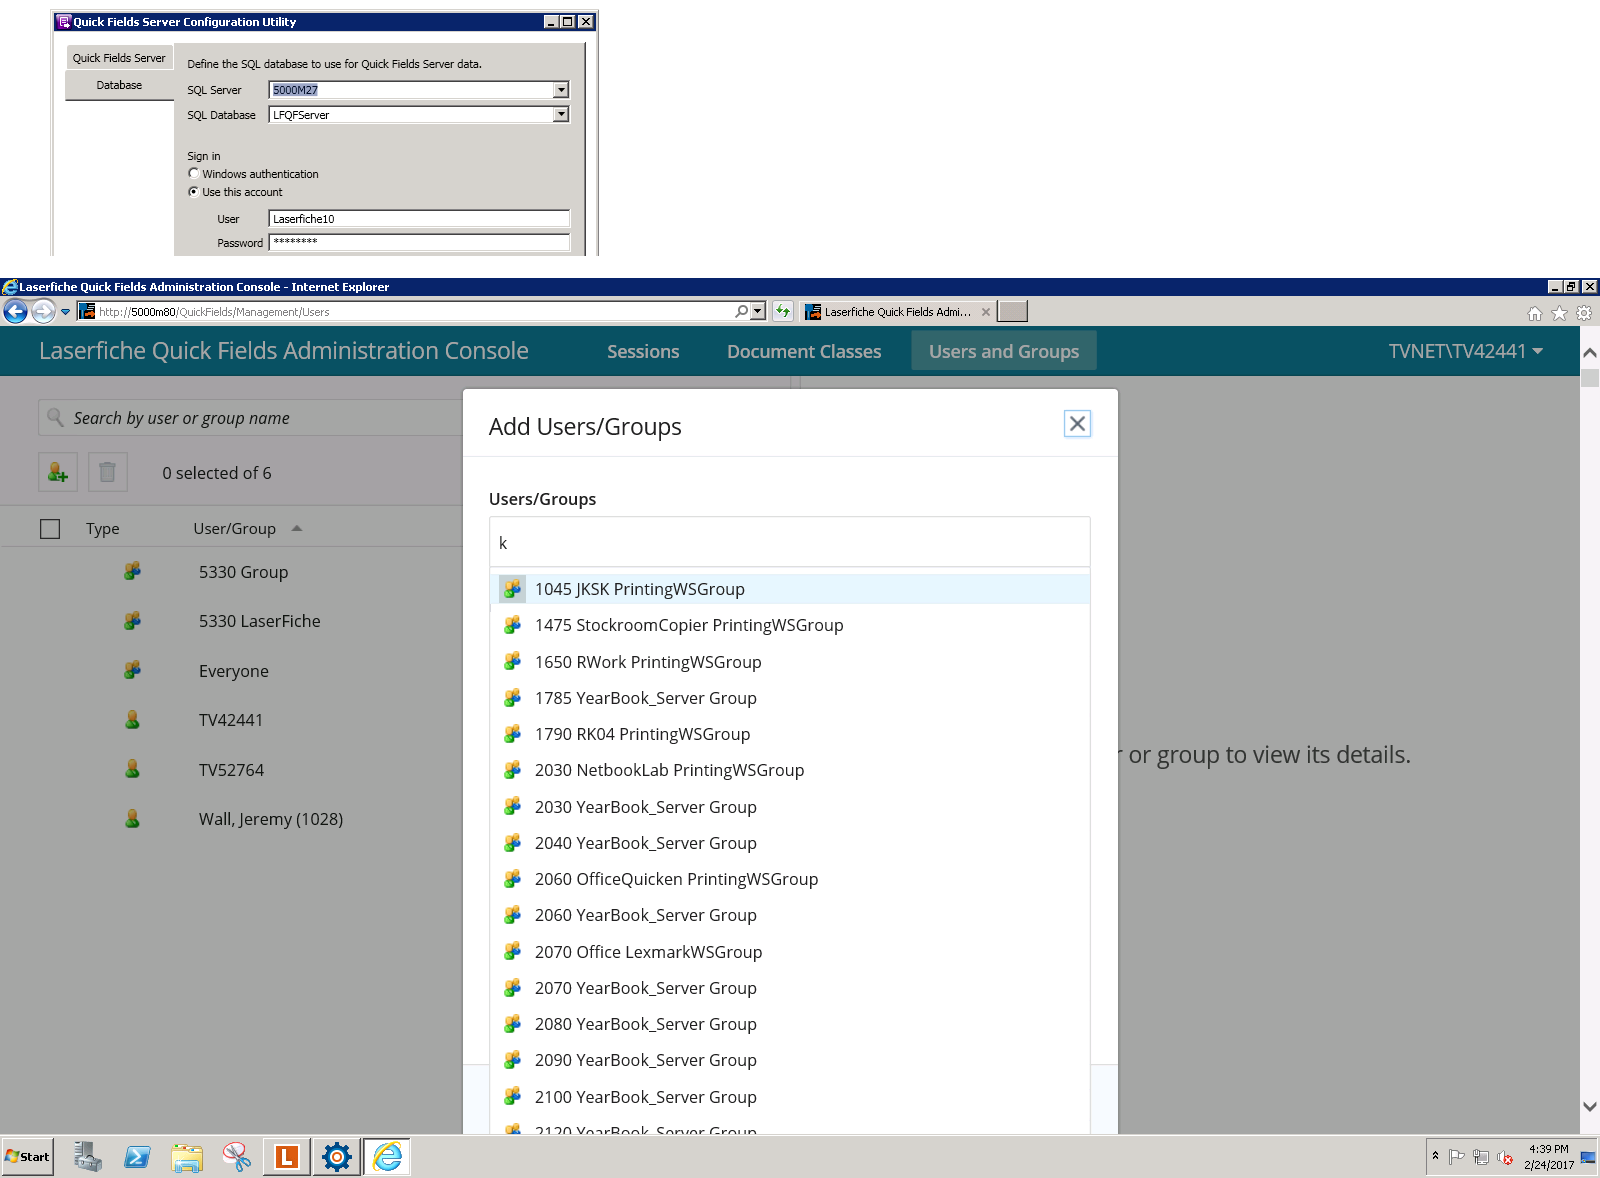 How do we confirm/alter the LDAP/AD connection with QF Admin